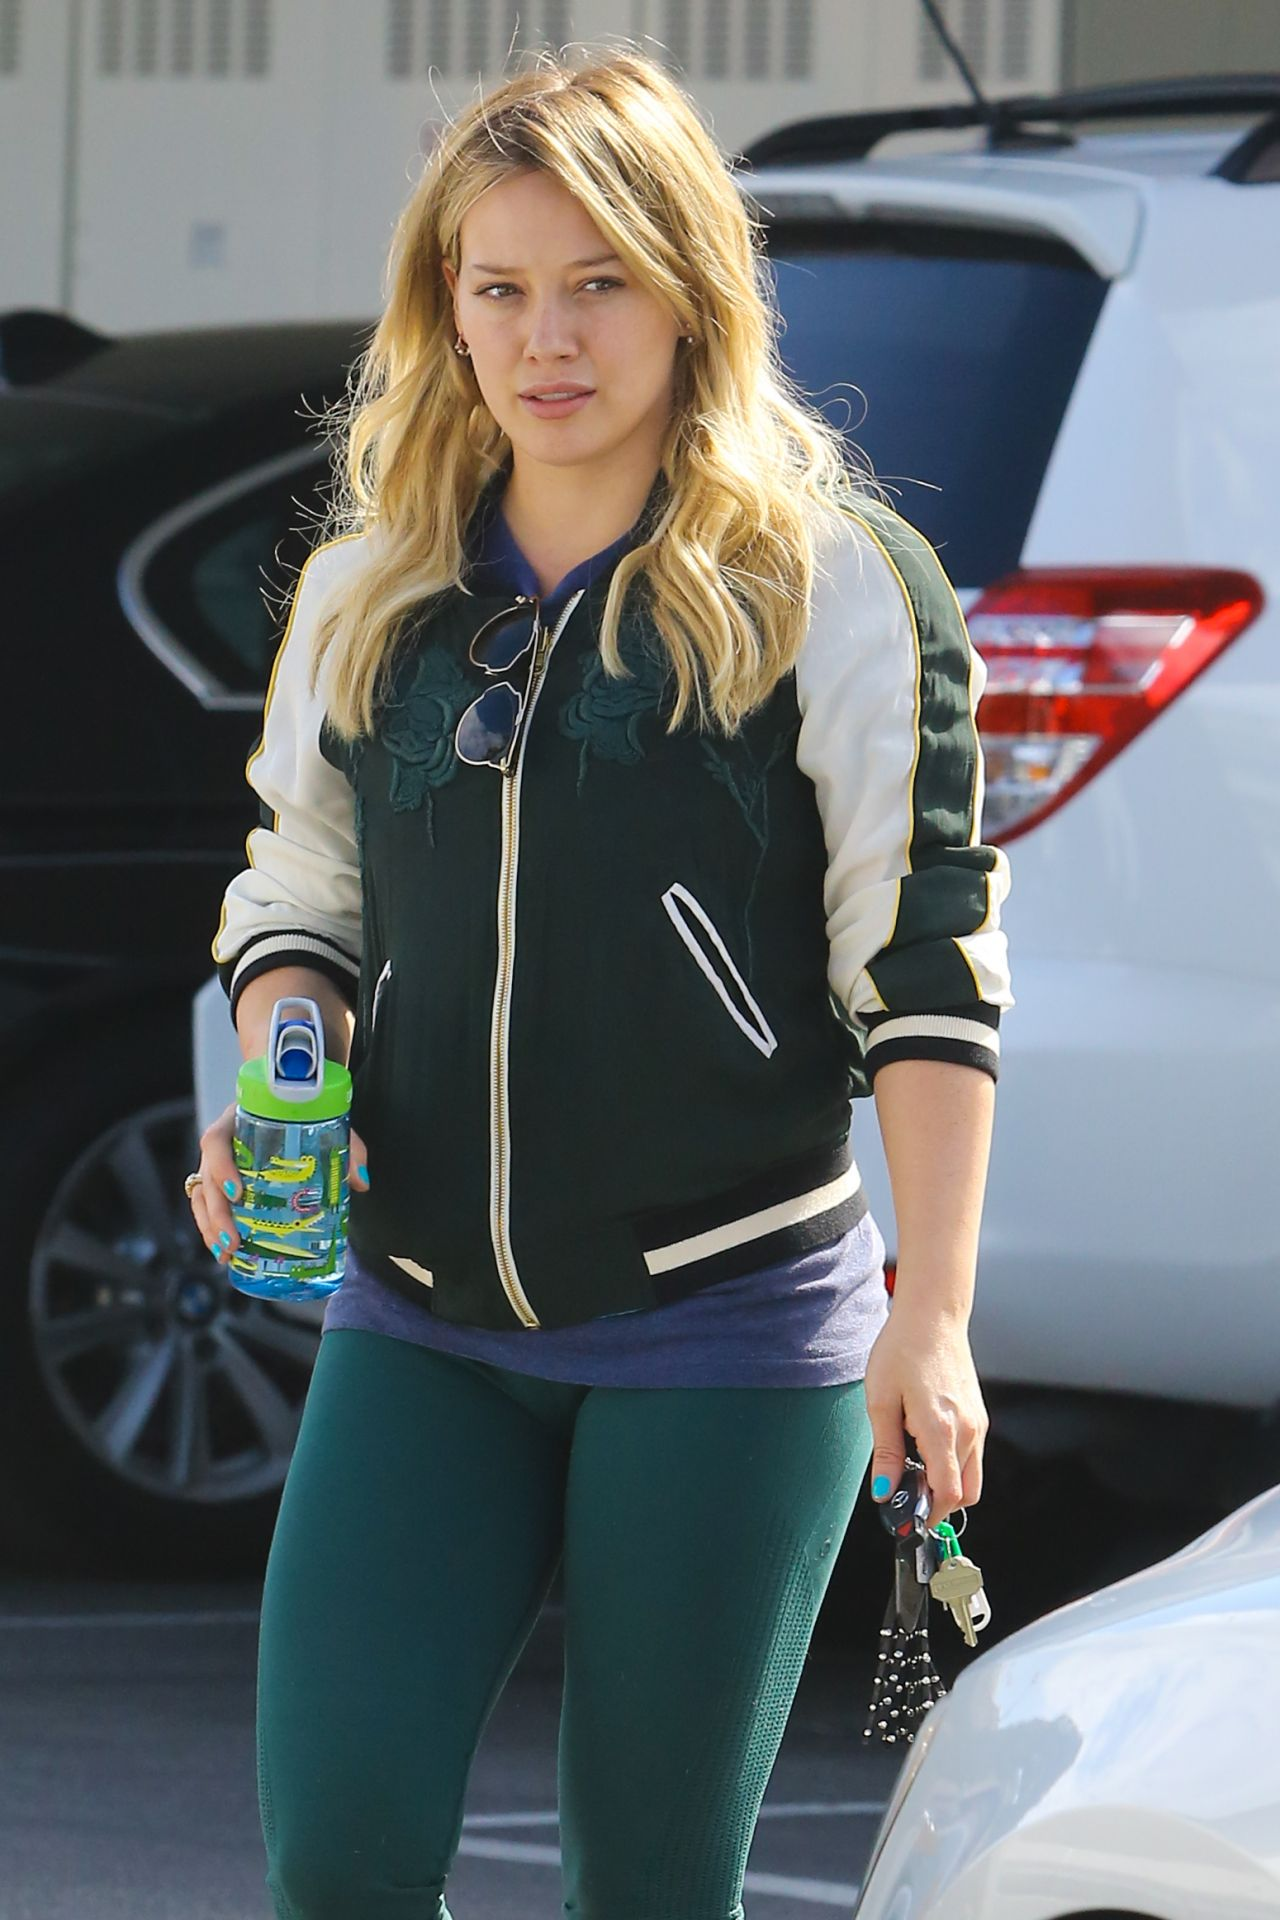 Hilary Duff in Leggings - Shopping at Bristol Farms in LA ... Hilary Duff